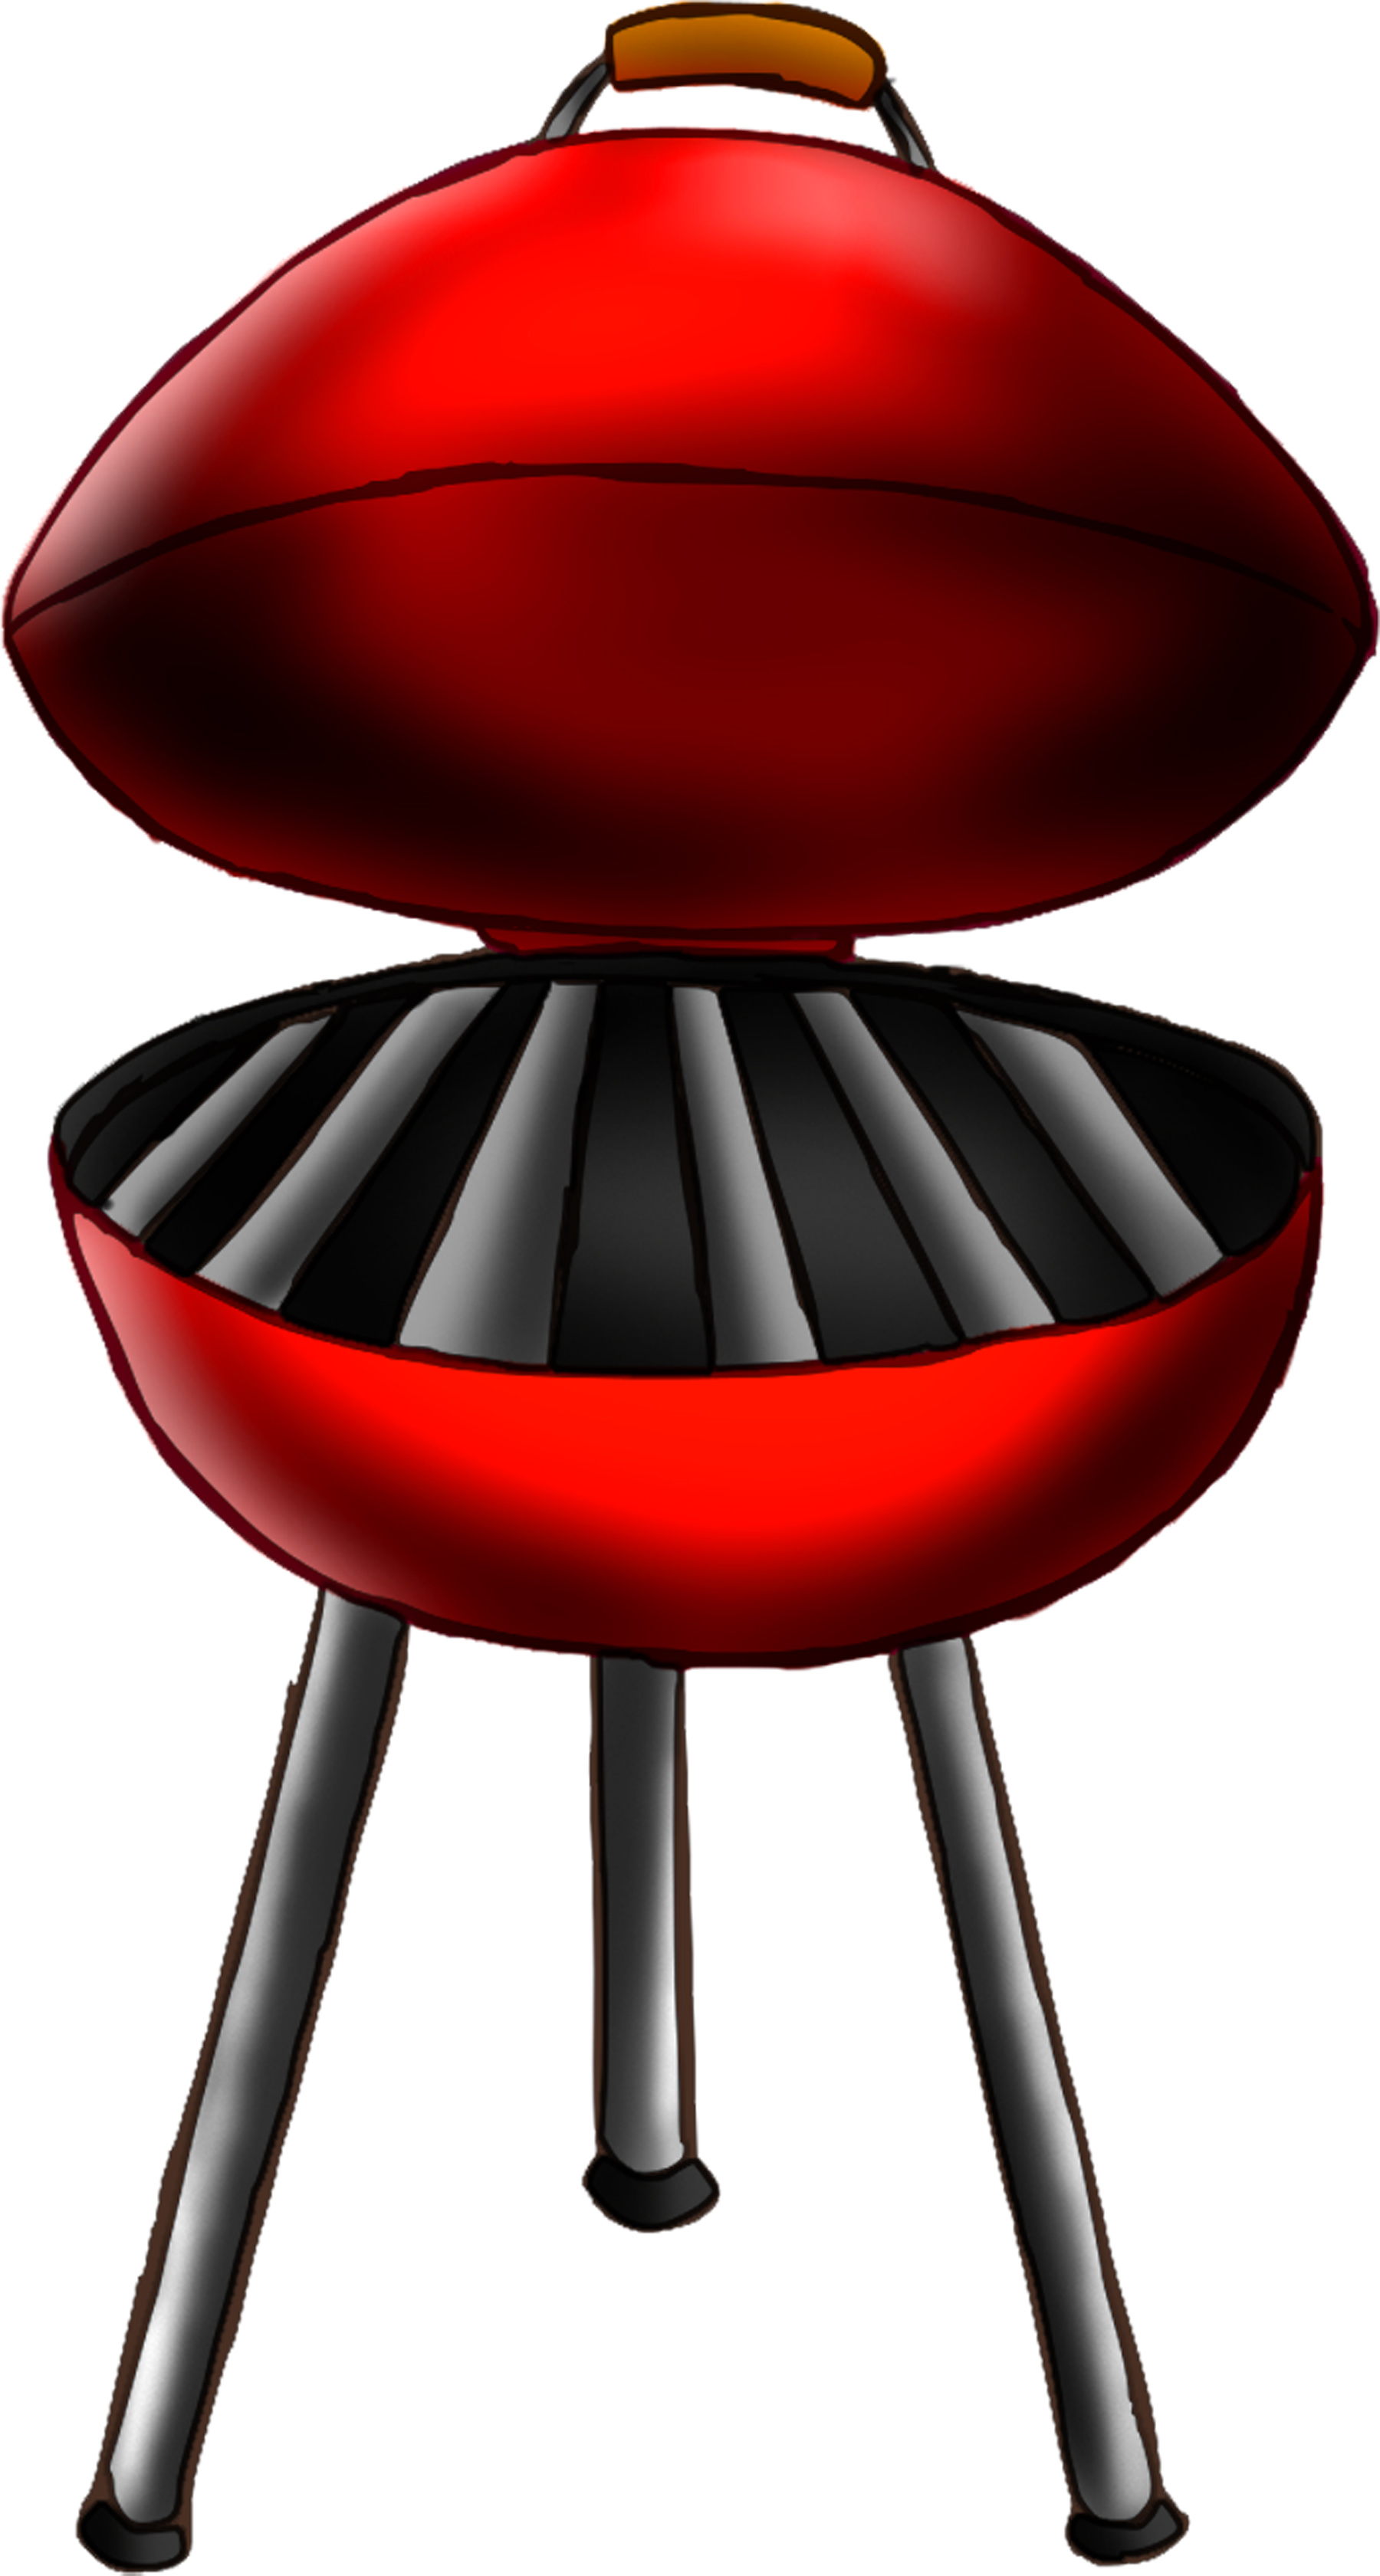 Kebab clipart Bbq  cliparts and Free